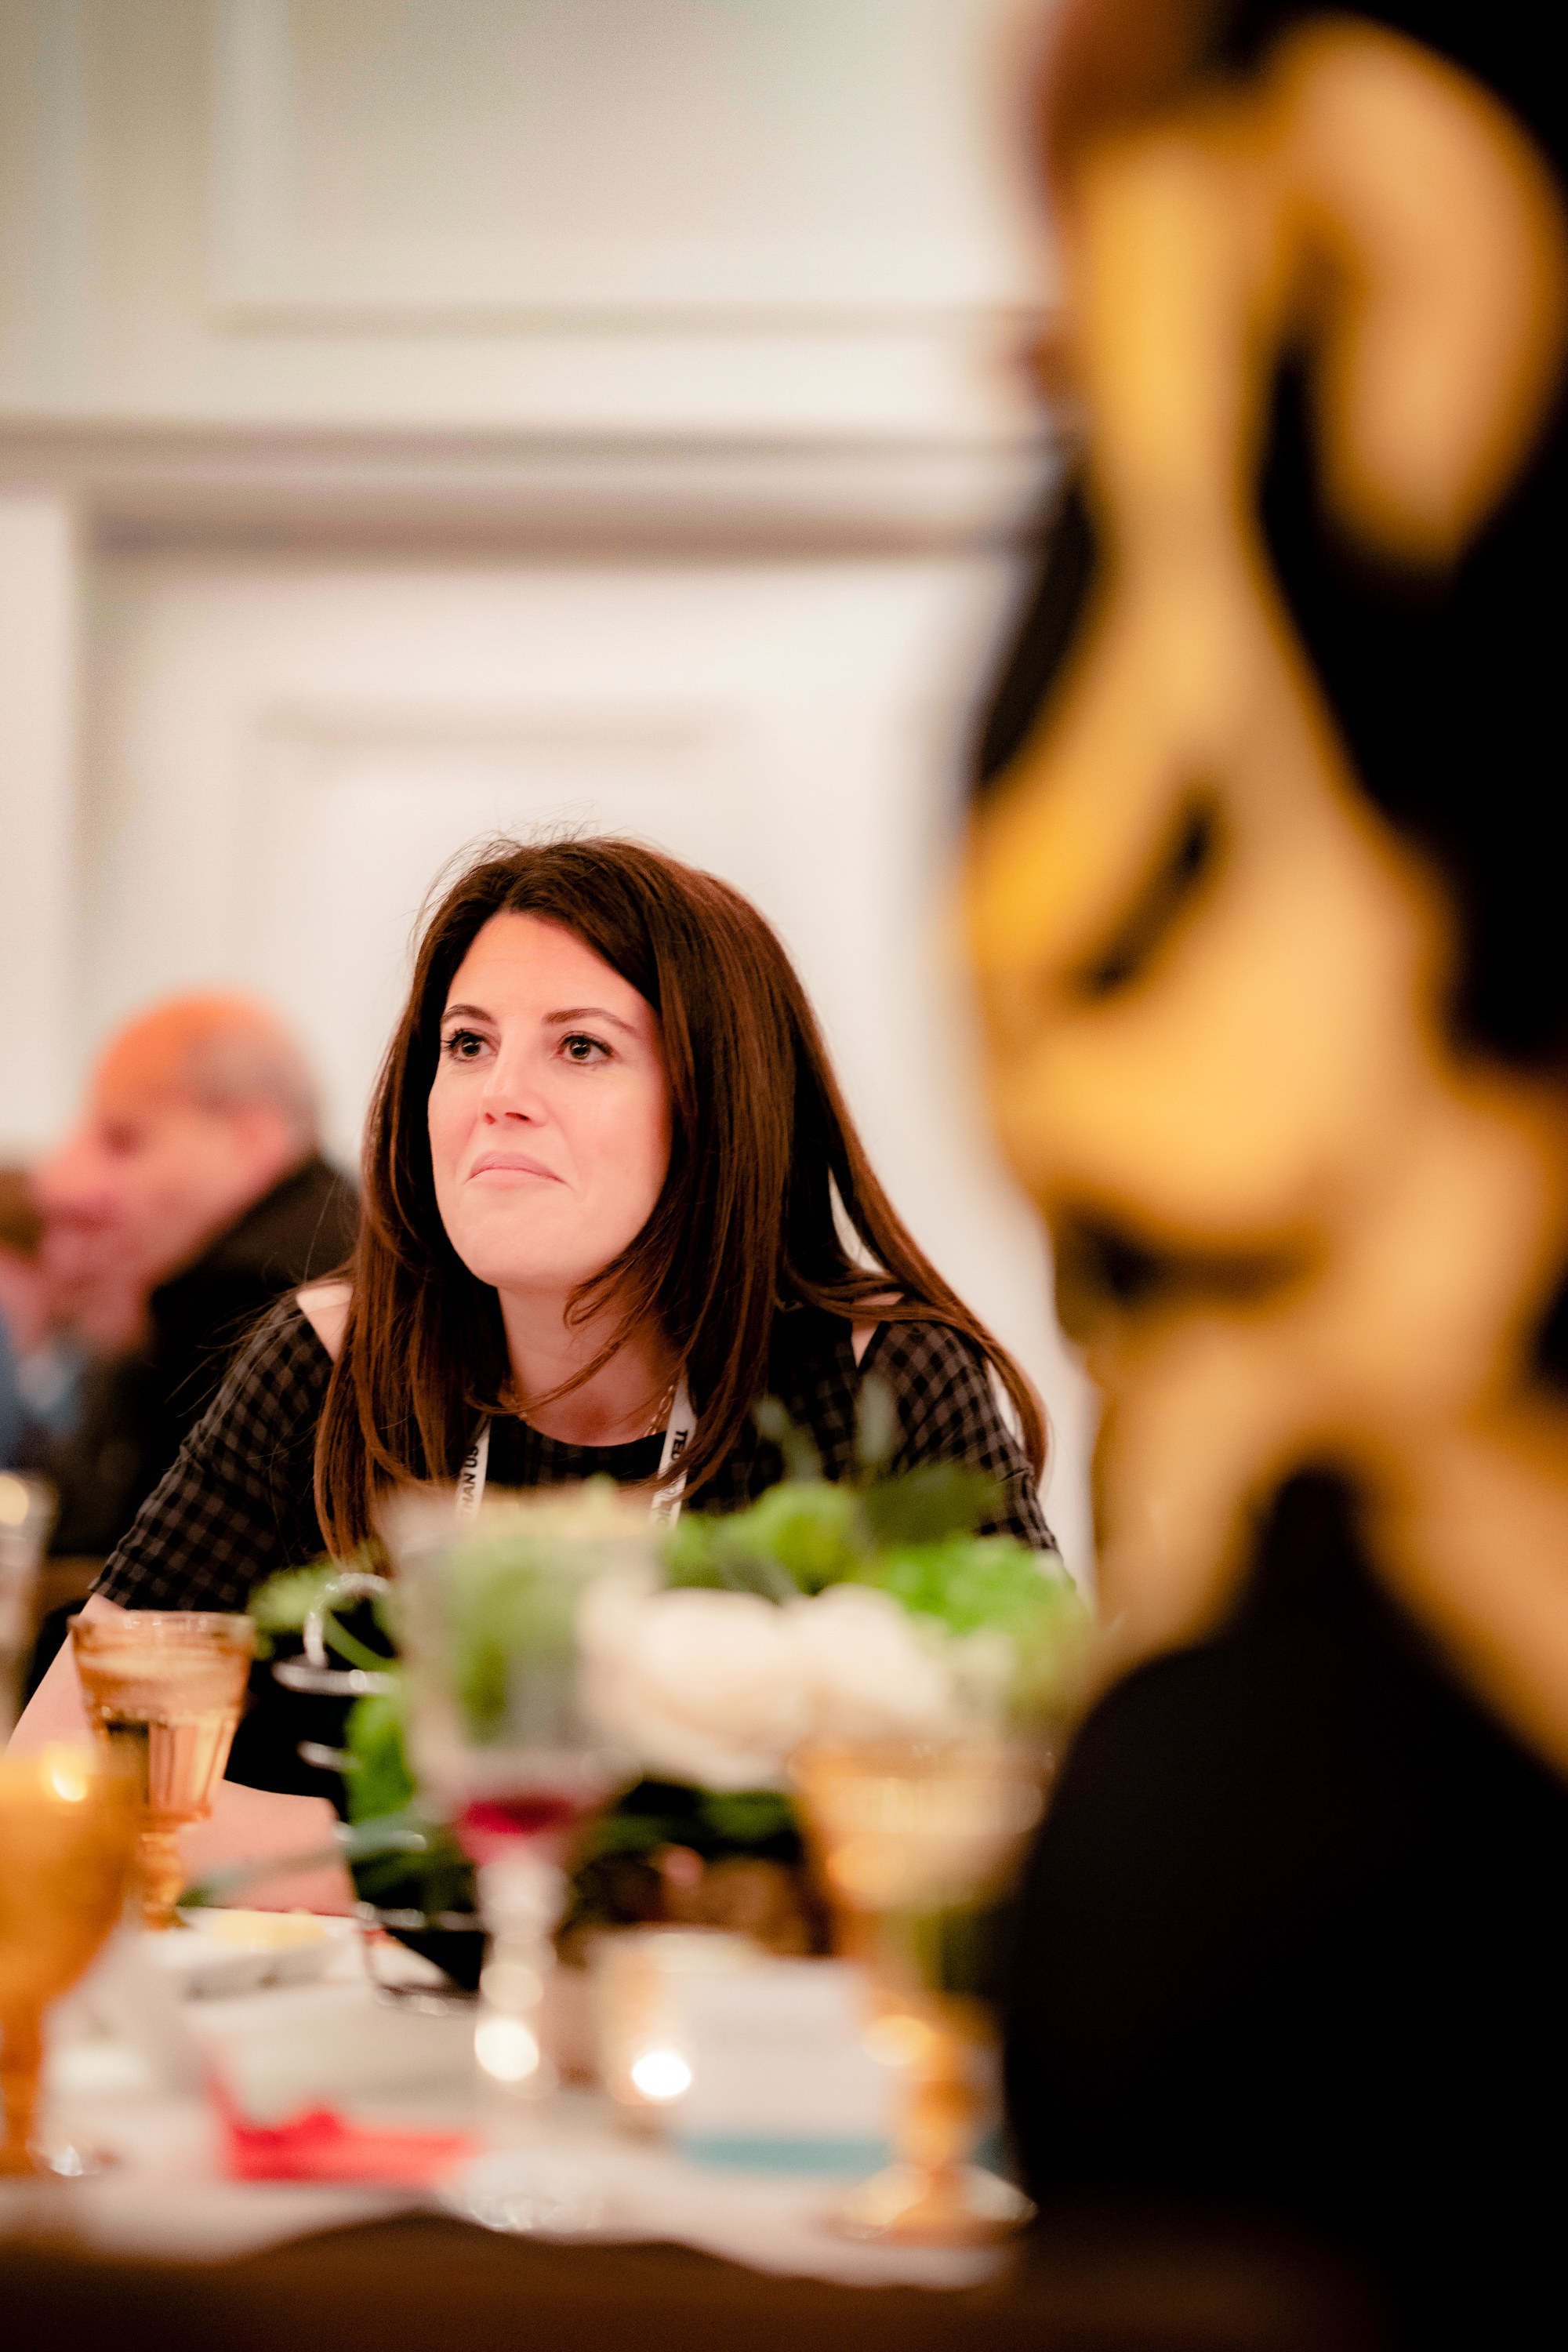 Lewinsky sits at a table during a dinner